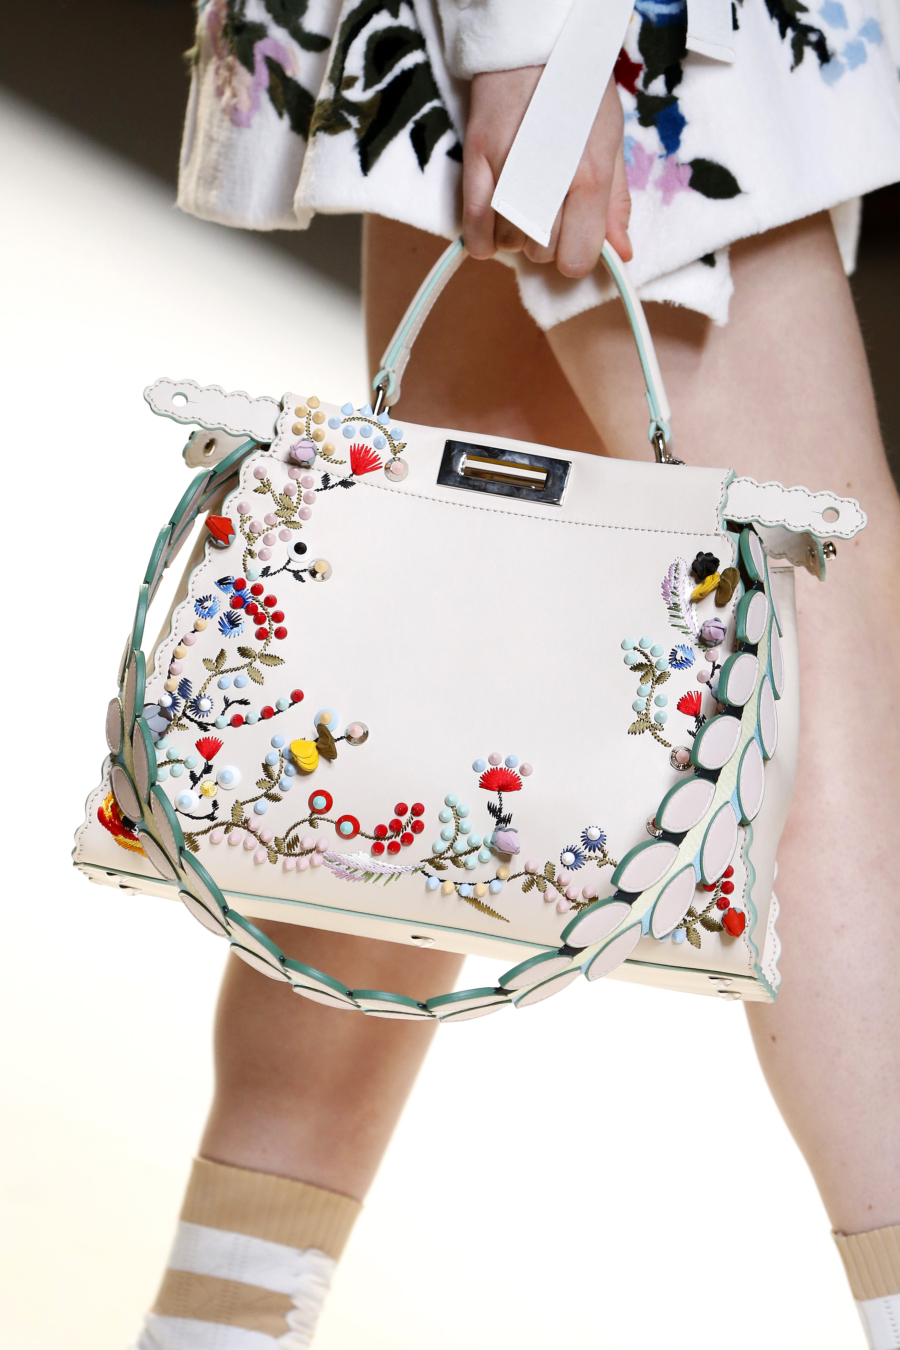 Floral Embroidered Satchel - Petite Girl Styling Dos and Don'ts // NotJessFashion.com